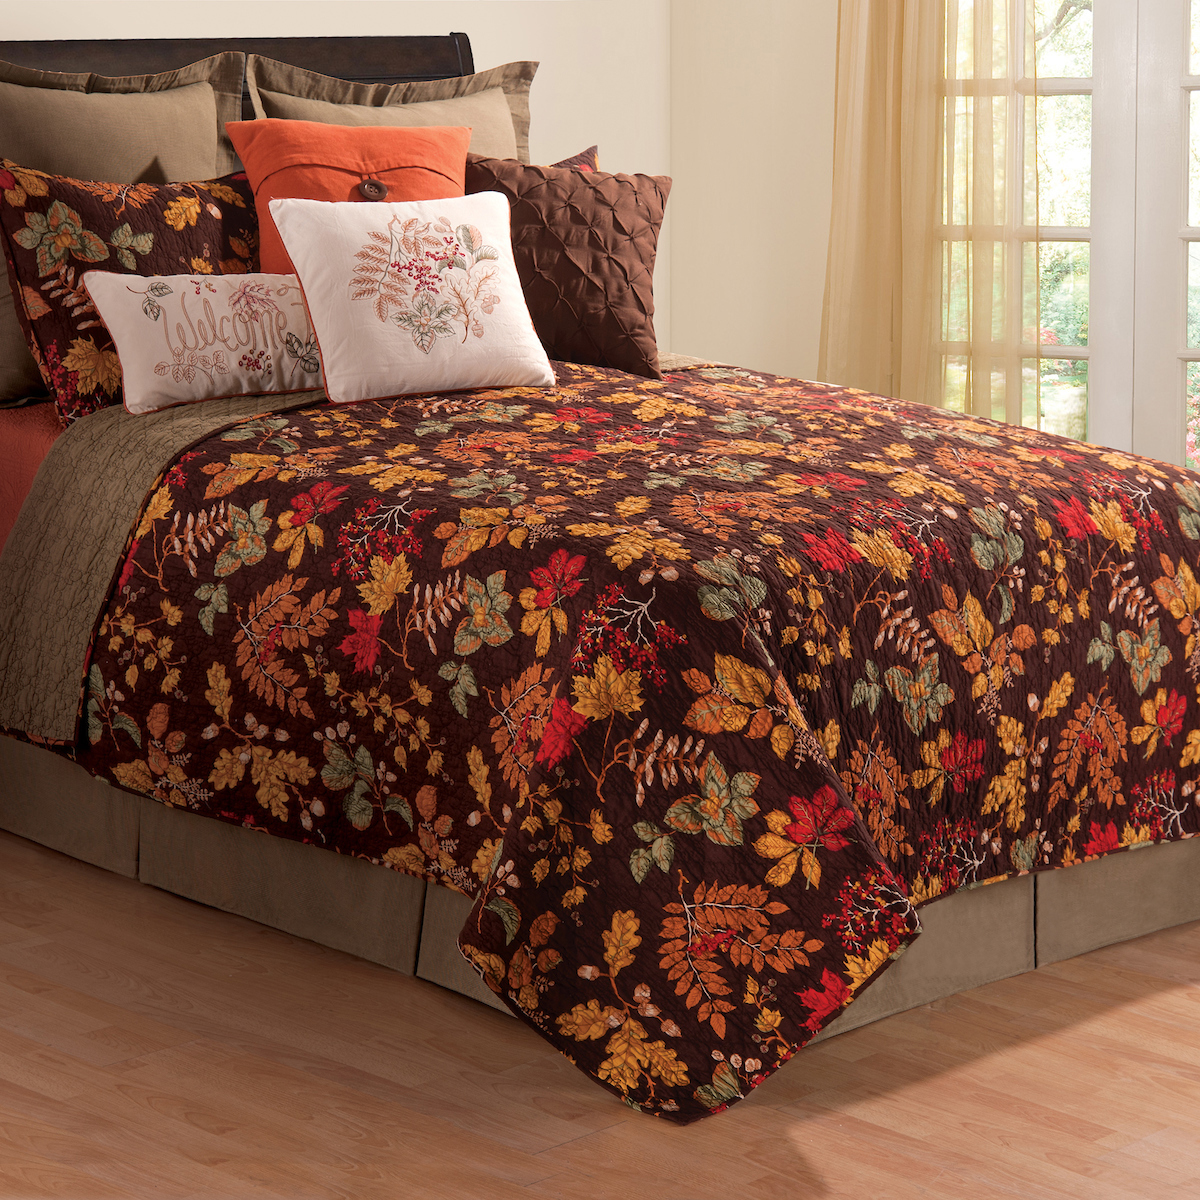 C&F Home_Lodge_Bedding_Quilts_Amison.jpg